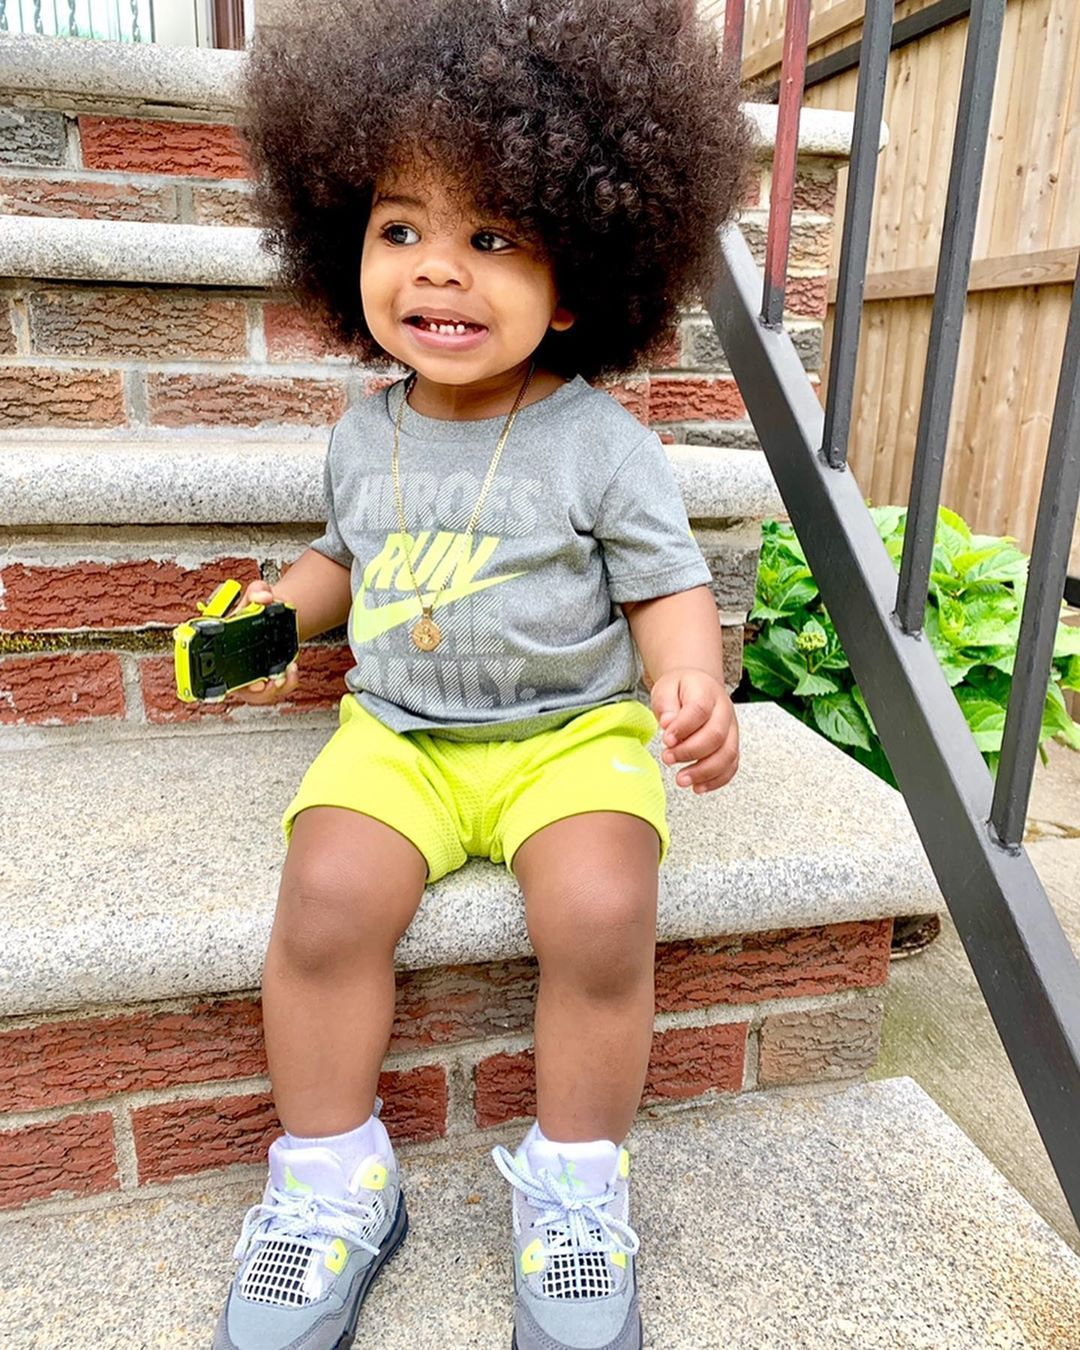 black babies hairstyleforblackwomen.net 626